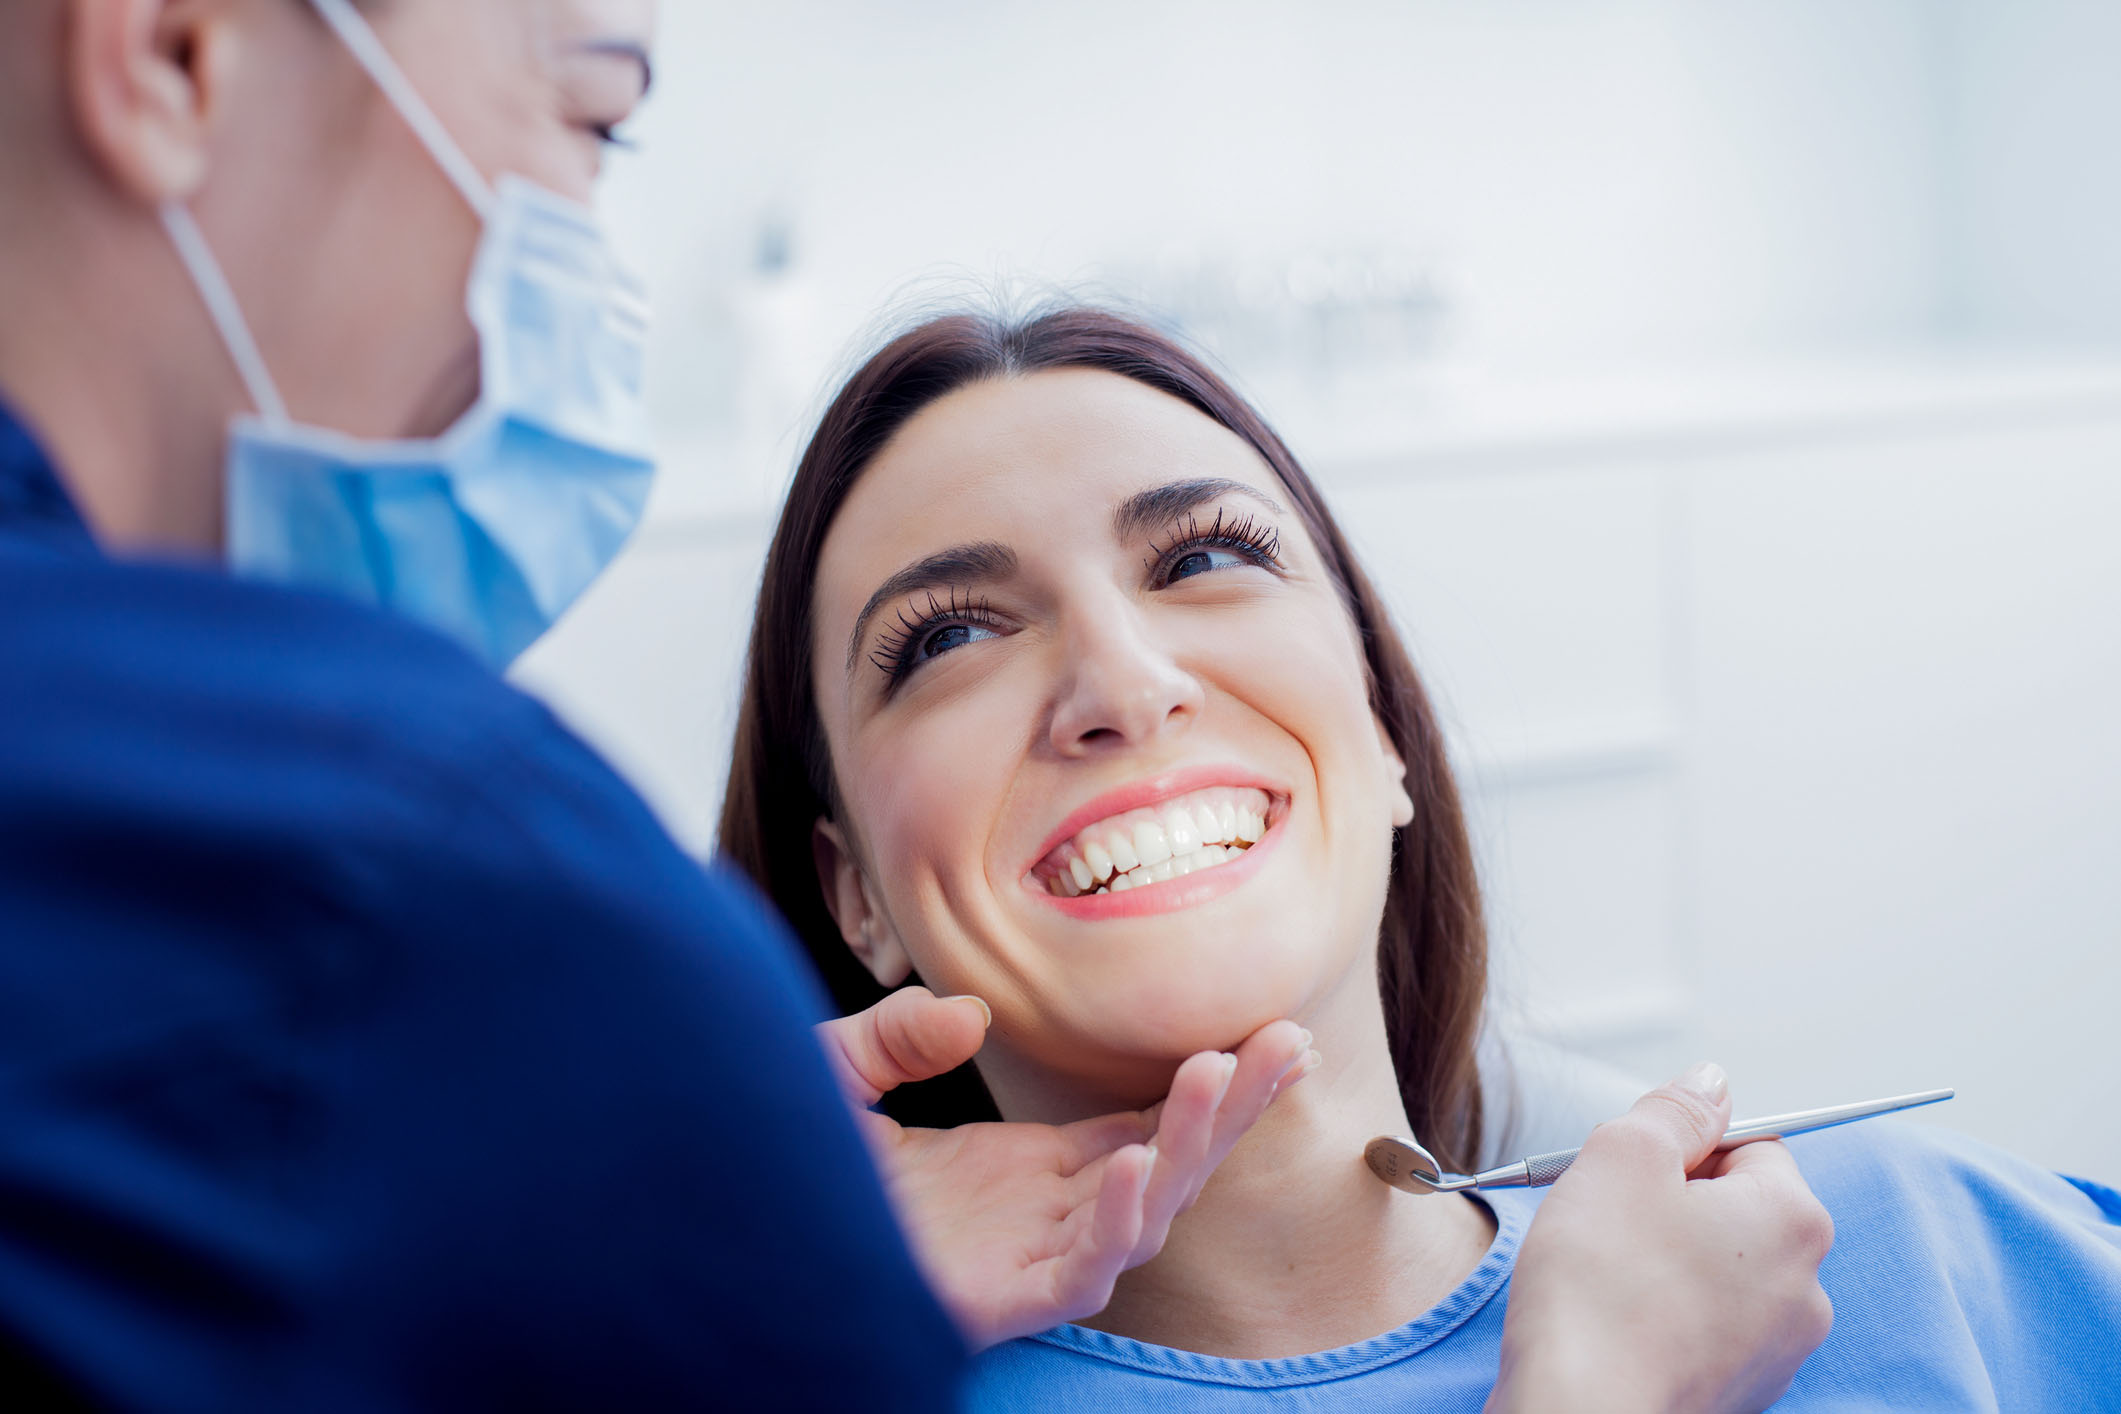 Young female patient smiling as a hygienist cleans her teeth